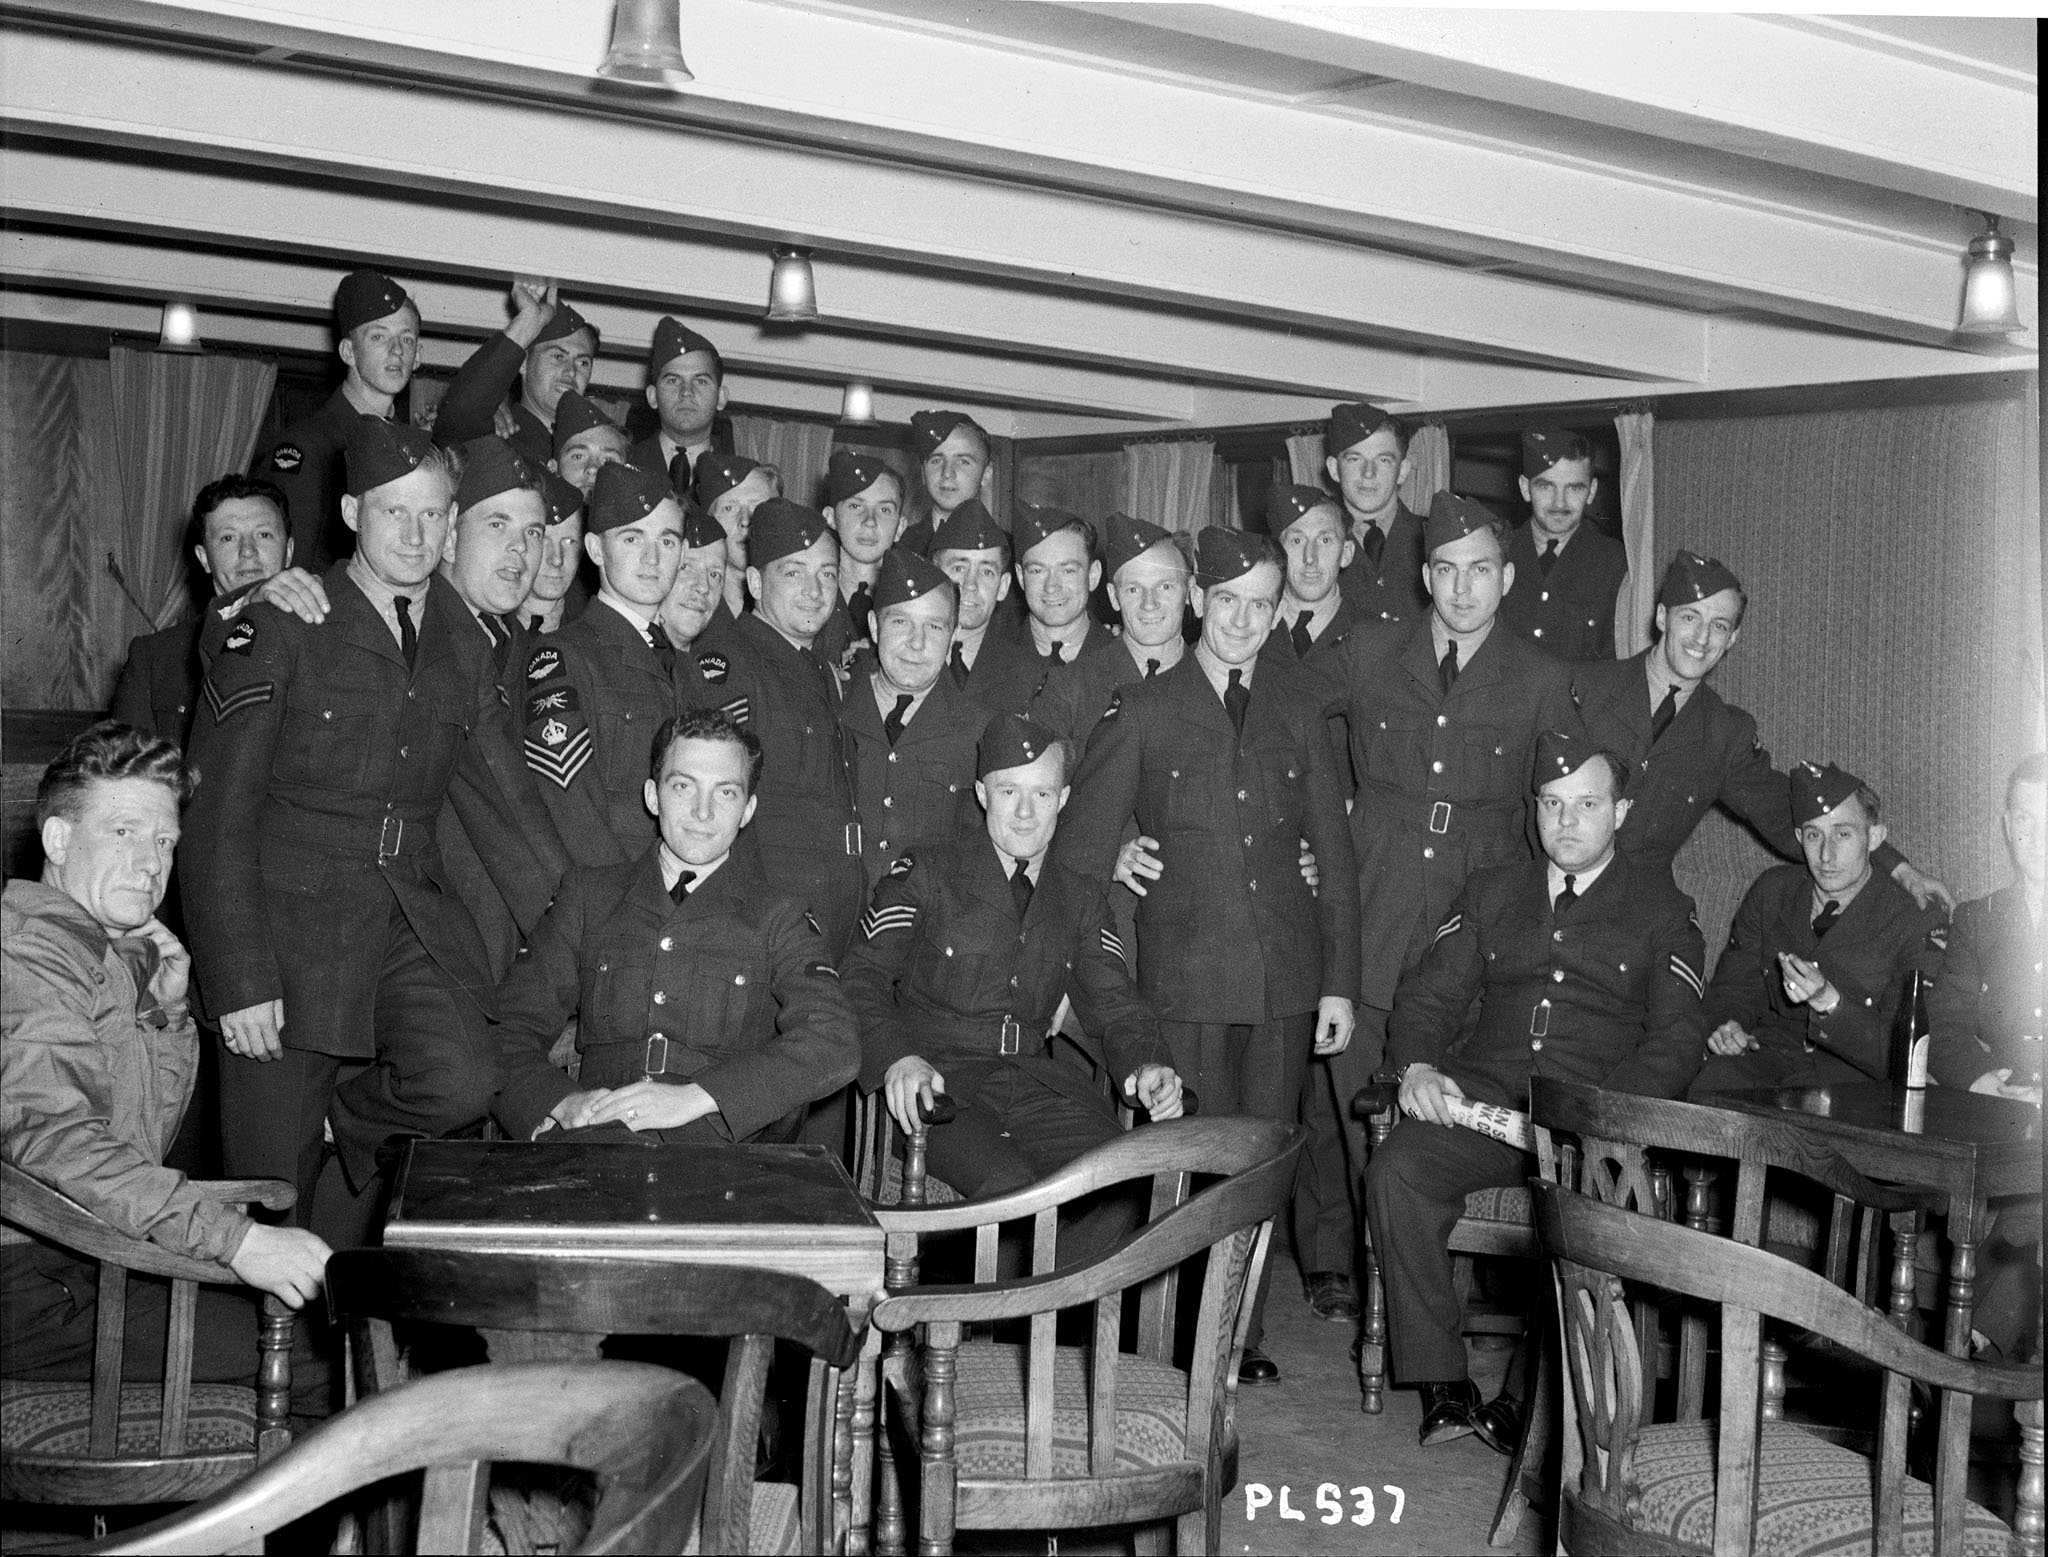 Airmen of of the RCAF's No. 1 (Fighter) Squadron sit for a photograph on board ship on June 8, 1940, before departing for Europe on active service. Soon after their arrival in Great Britain, many, if not all, would undoubtedly be in the thick of things during the Battle of Britain. PHOTO: DND Archives, PL-537